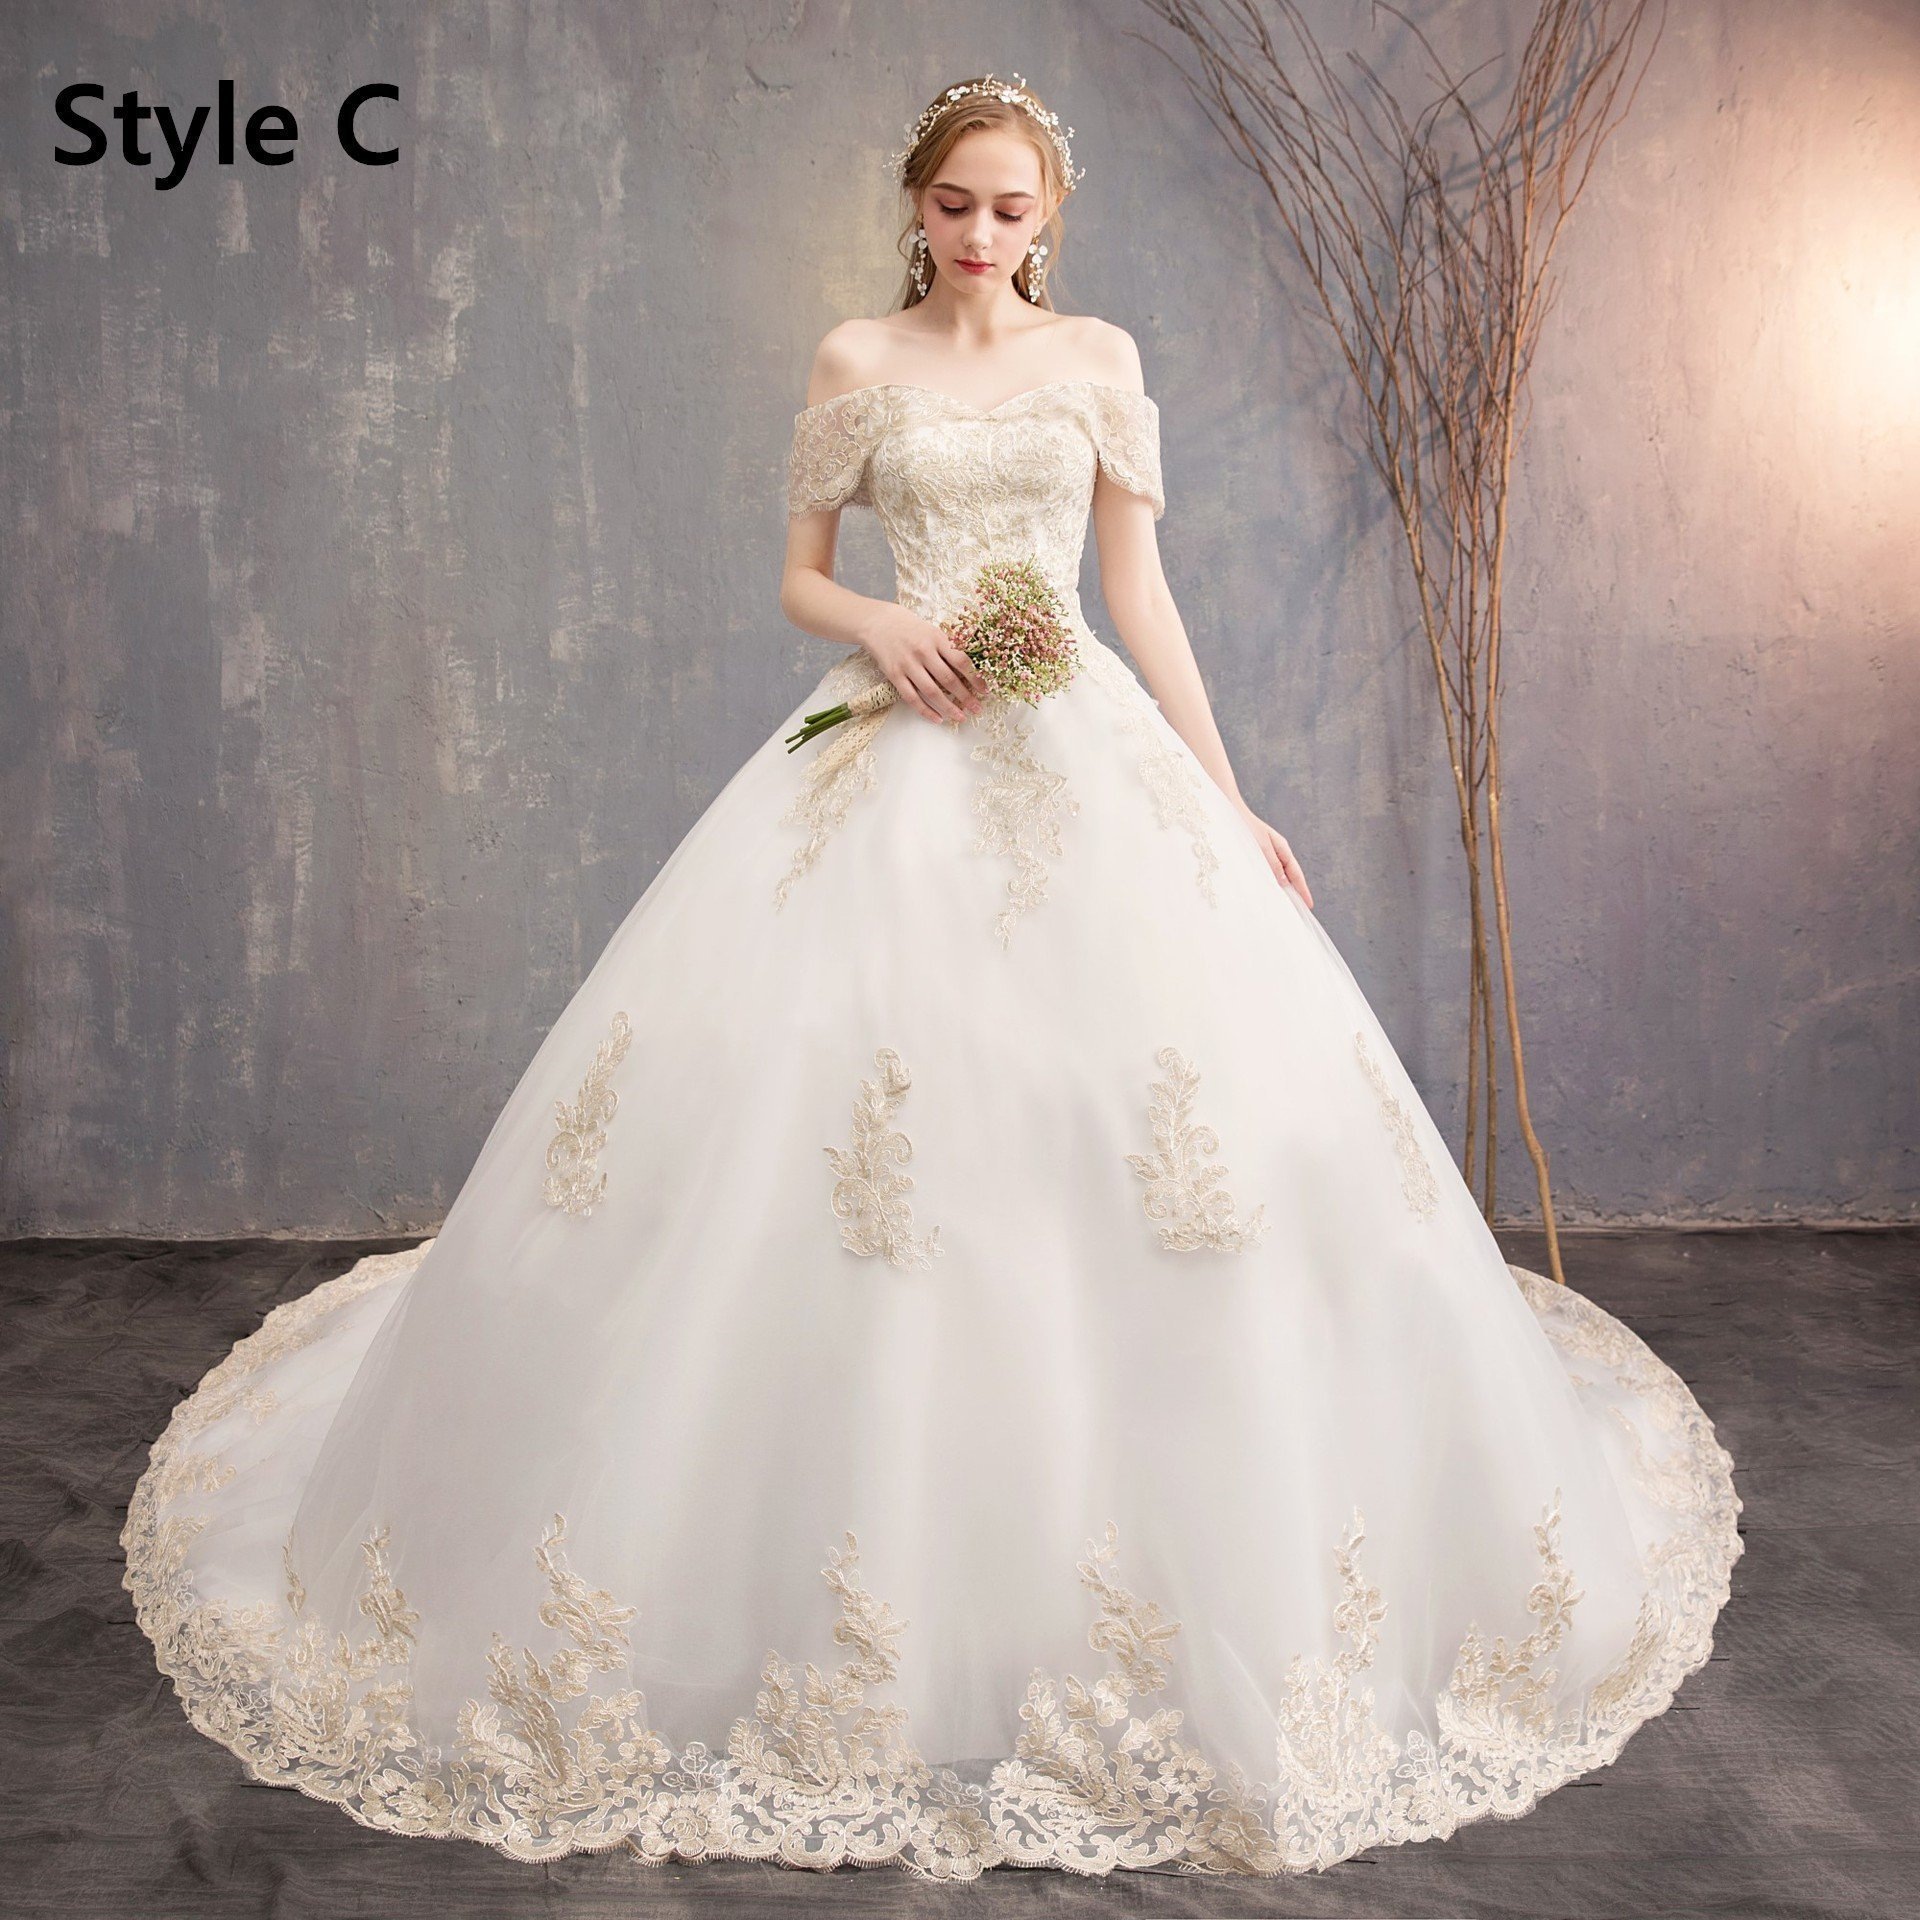 Best Wedding Dresses Lace Dresses Black Floral Maxi Dress With Sleeves Modern Filipiniana Groom Summer Wedding Attire Ombre Dress Wedding Dresses For Beach Wedding Little Bride Dress